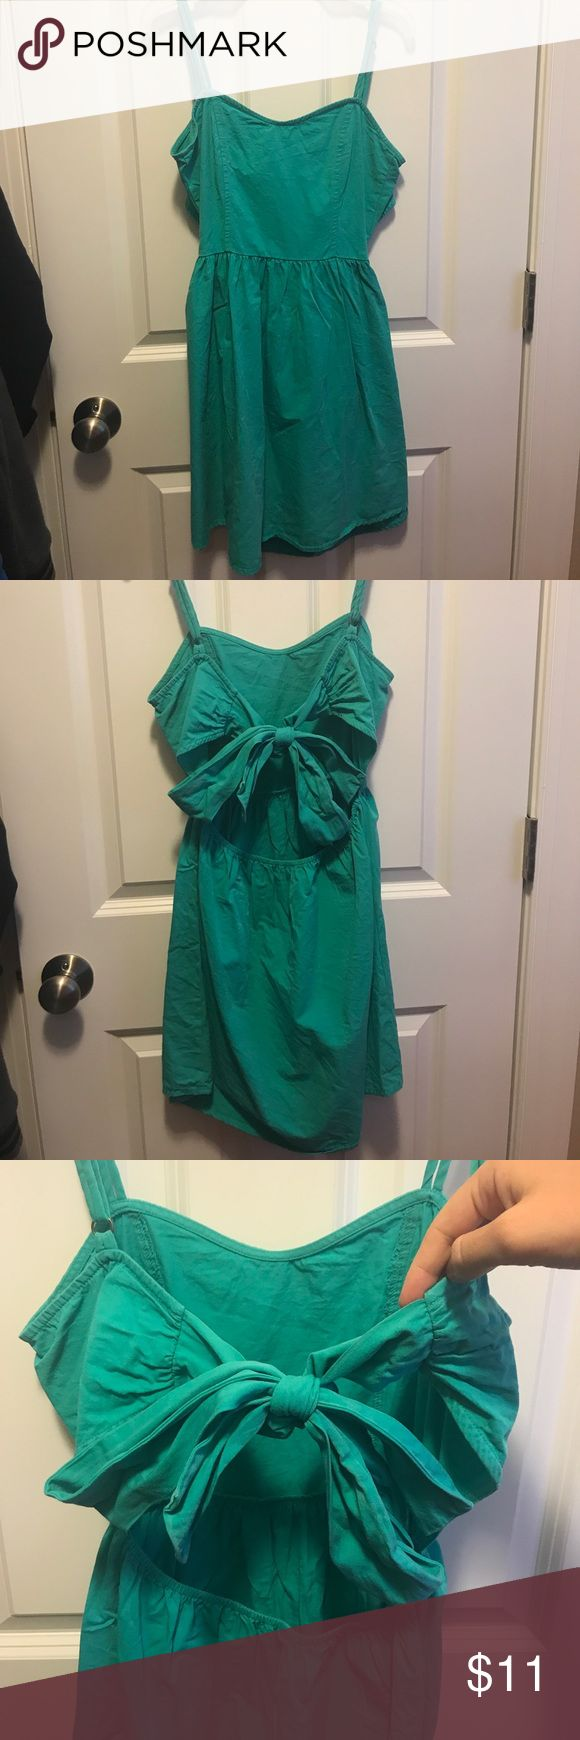 Adorable Turquoise Green Dress w/ detailed back! This dress is perfect for going to a casual wedding, date, or out just about anywhere! You can dress it up by adding a fancy necklace or dress it down by adding a waist belt. It has an open back with parts that you can tie into a bow. Color is a turquoise green color. Worn a couple of times, color isn't faded or anything. Open to counter offers 😊 🚫 no trades 🚫 Dresses